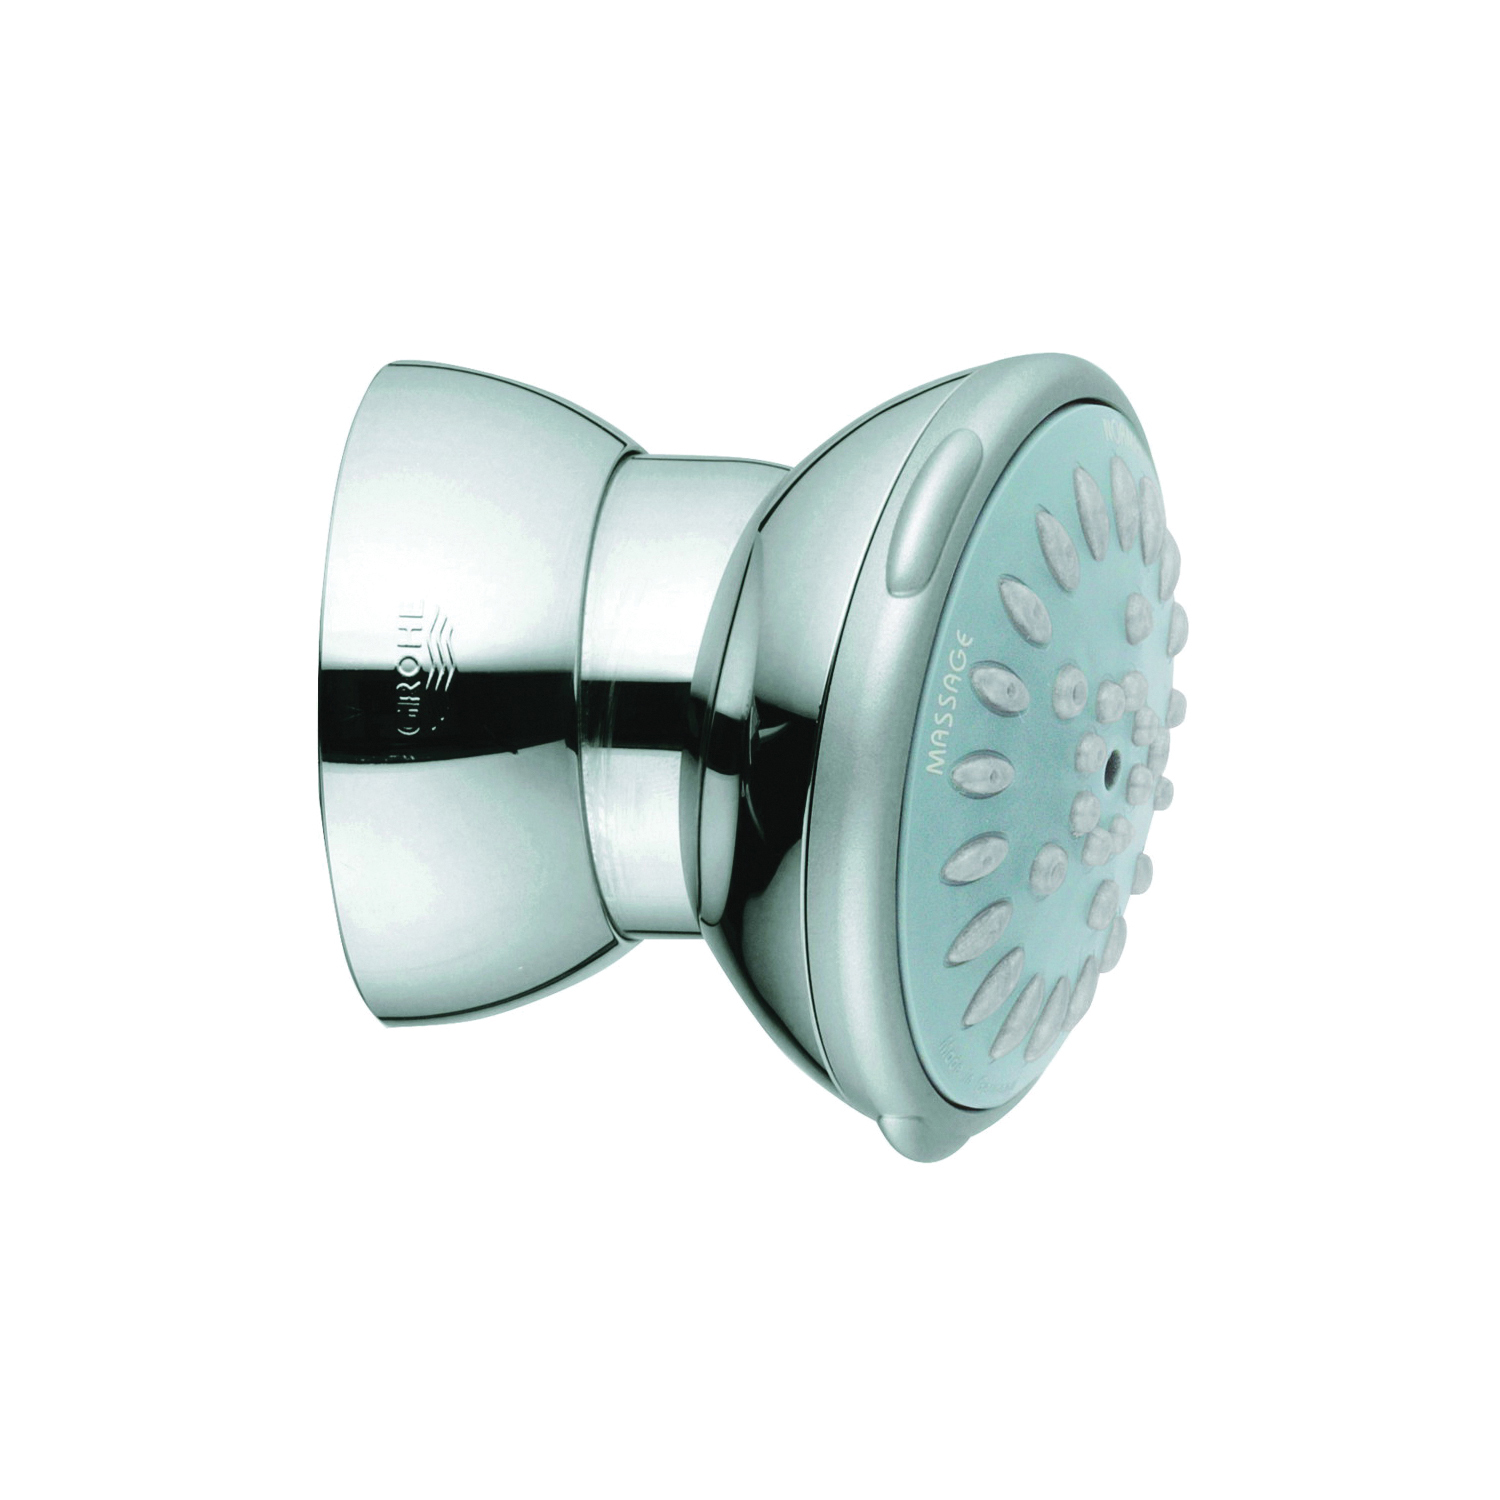 GROHE 27070000 Ondus® Relexa 65 Side Shower, (2) Normal/Massage Spray, 2.5 gpm Maximum, Round Head, Wall Mount, Import